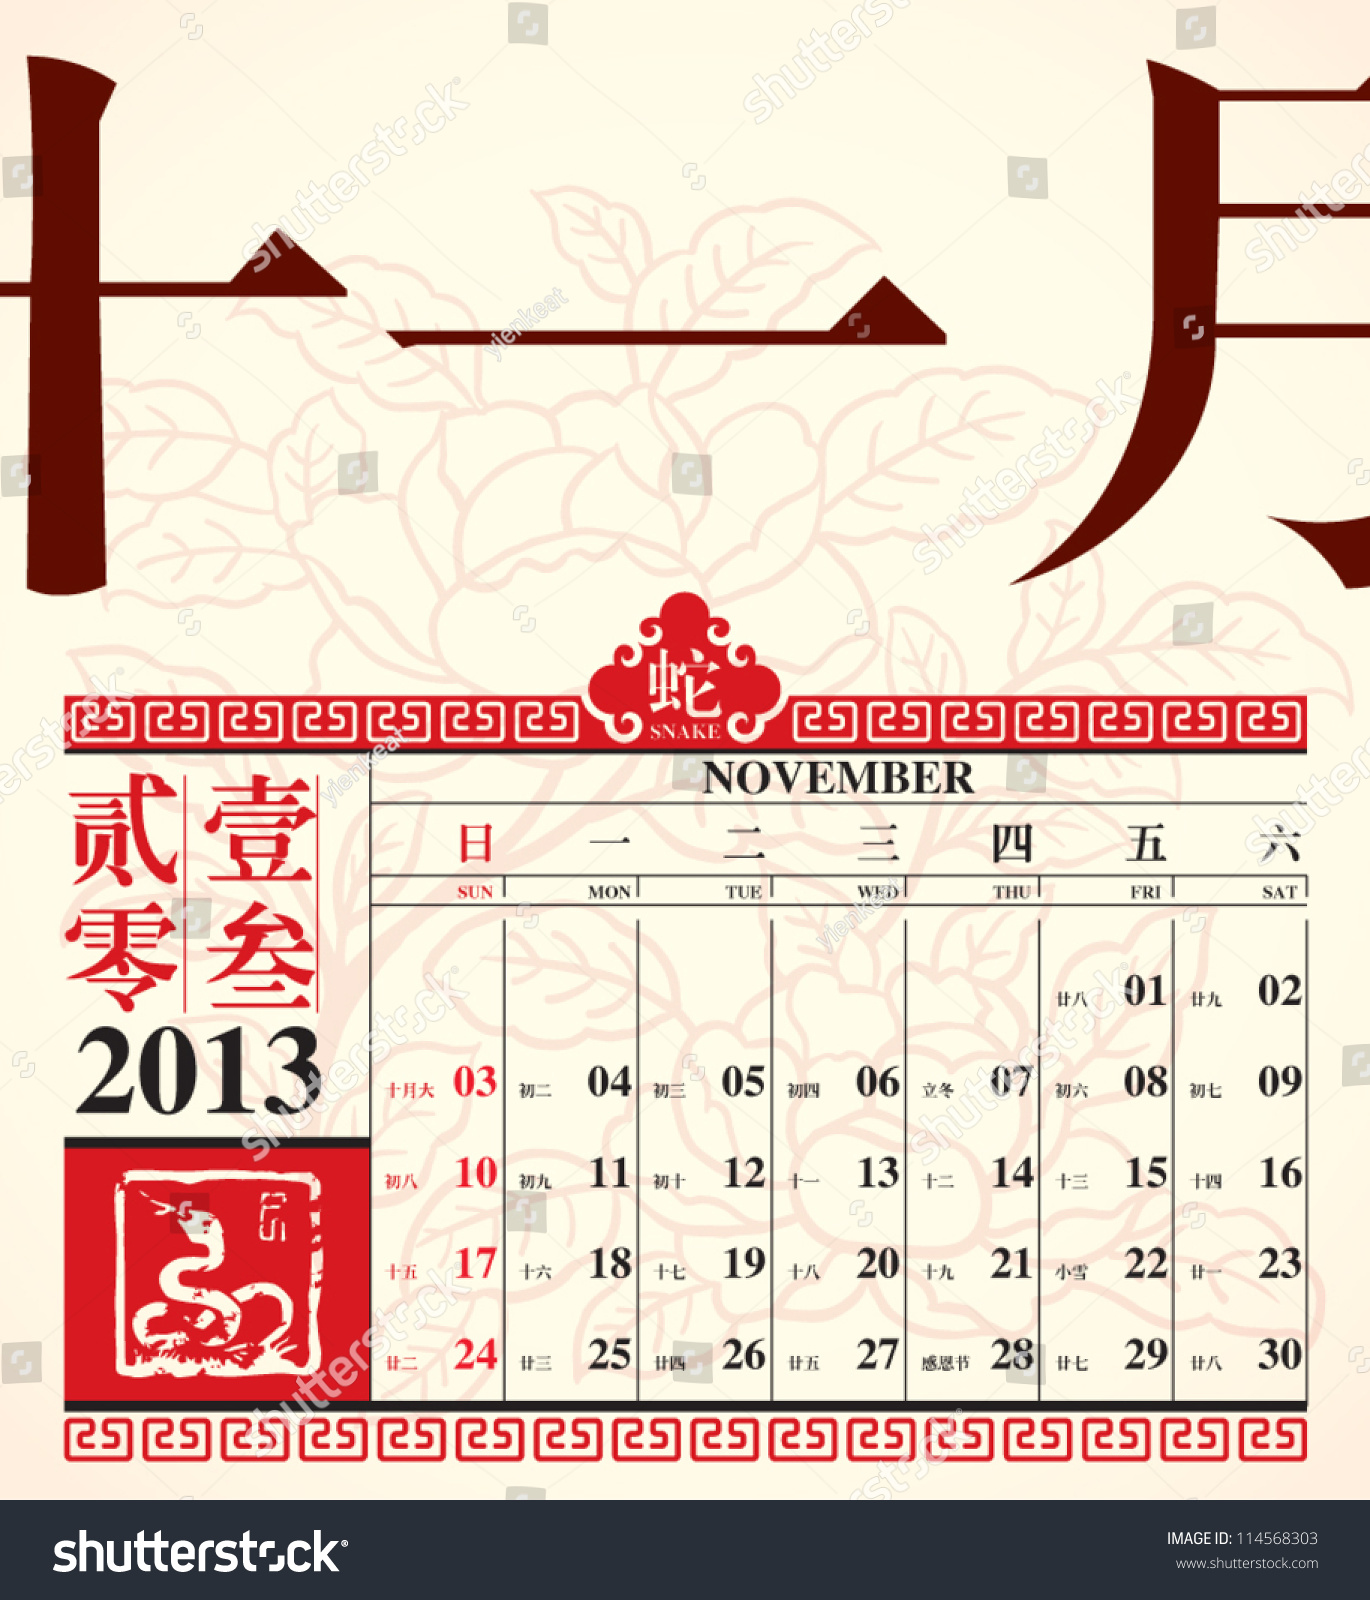 November Calendar Design : Vector retro chinese calendar design november